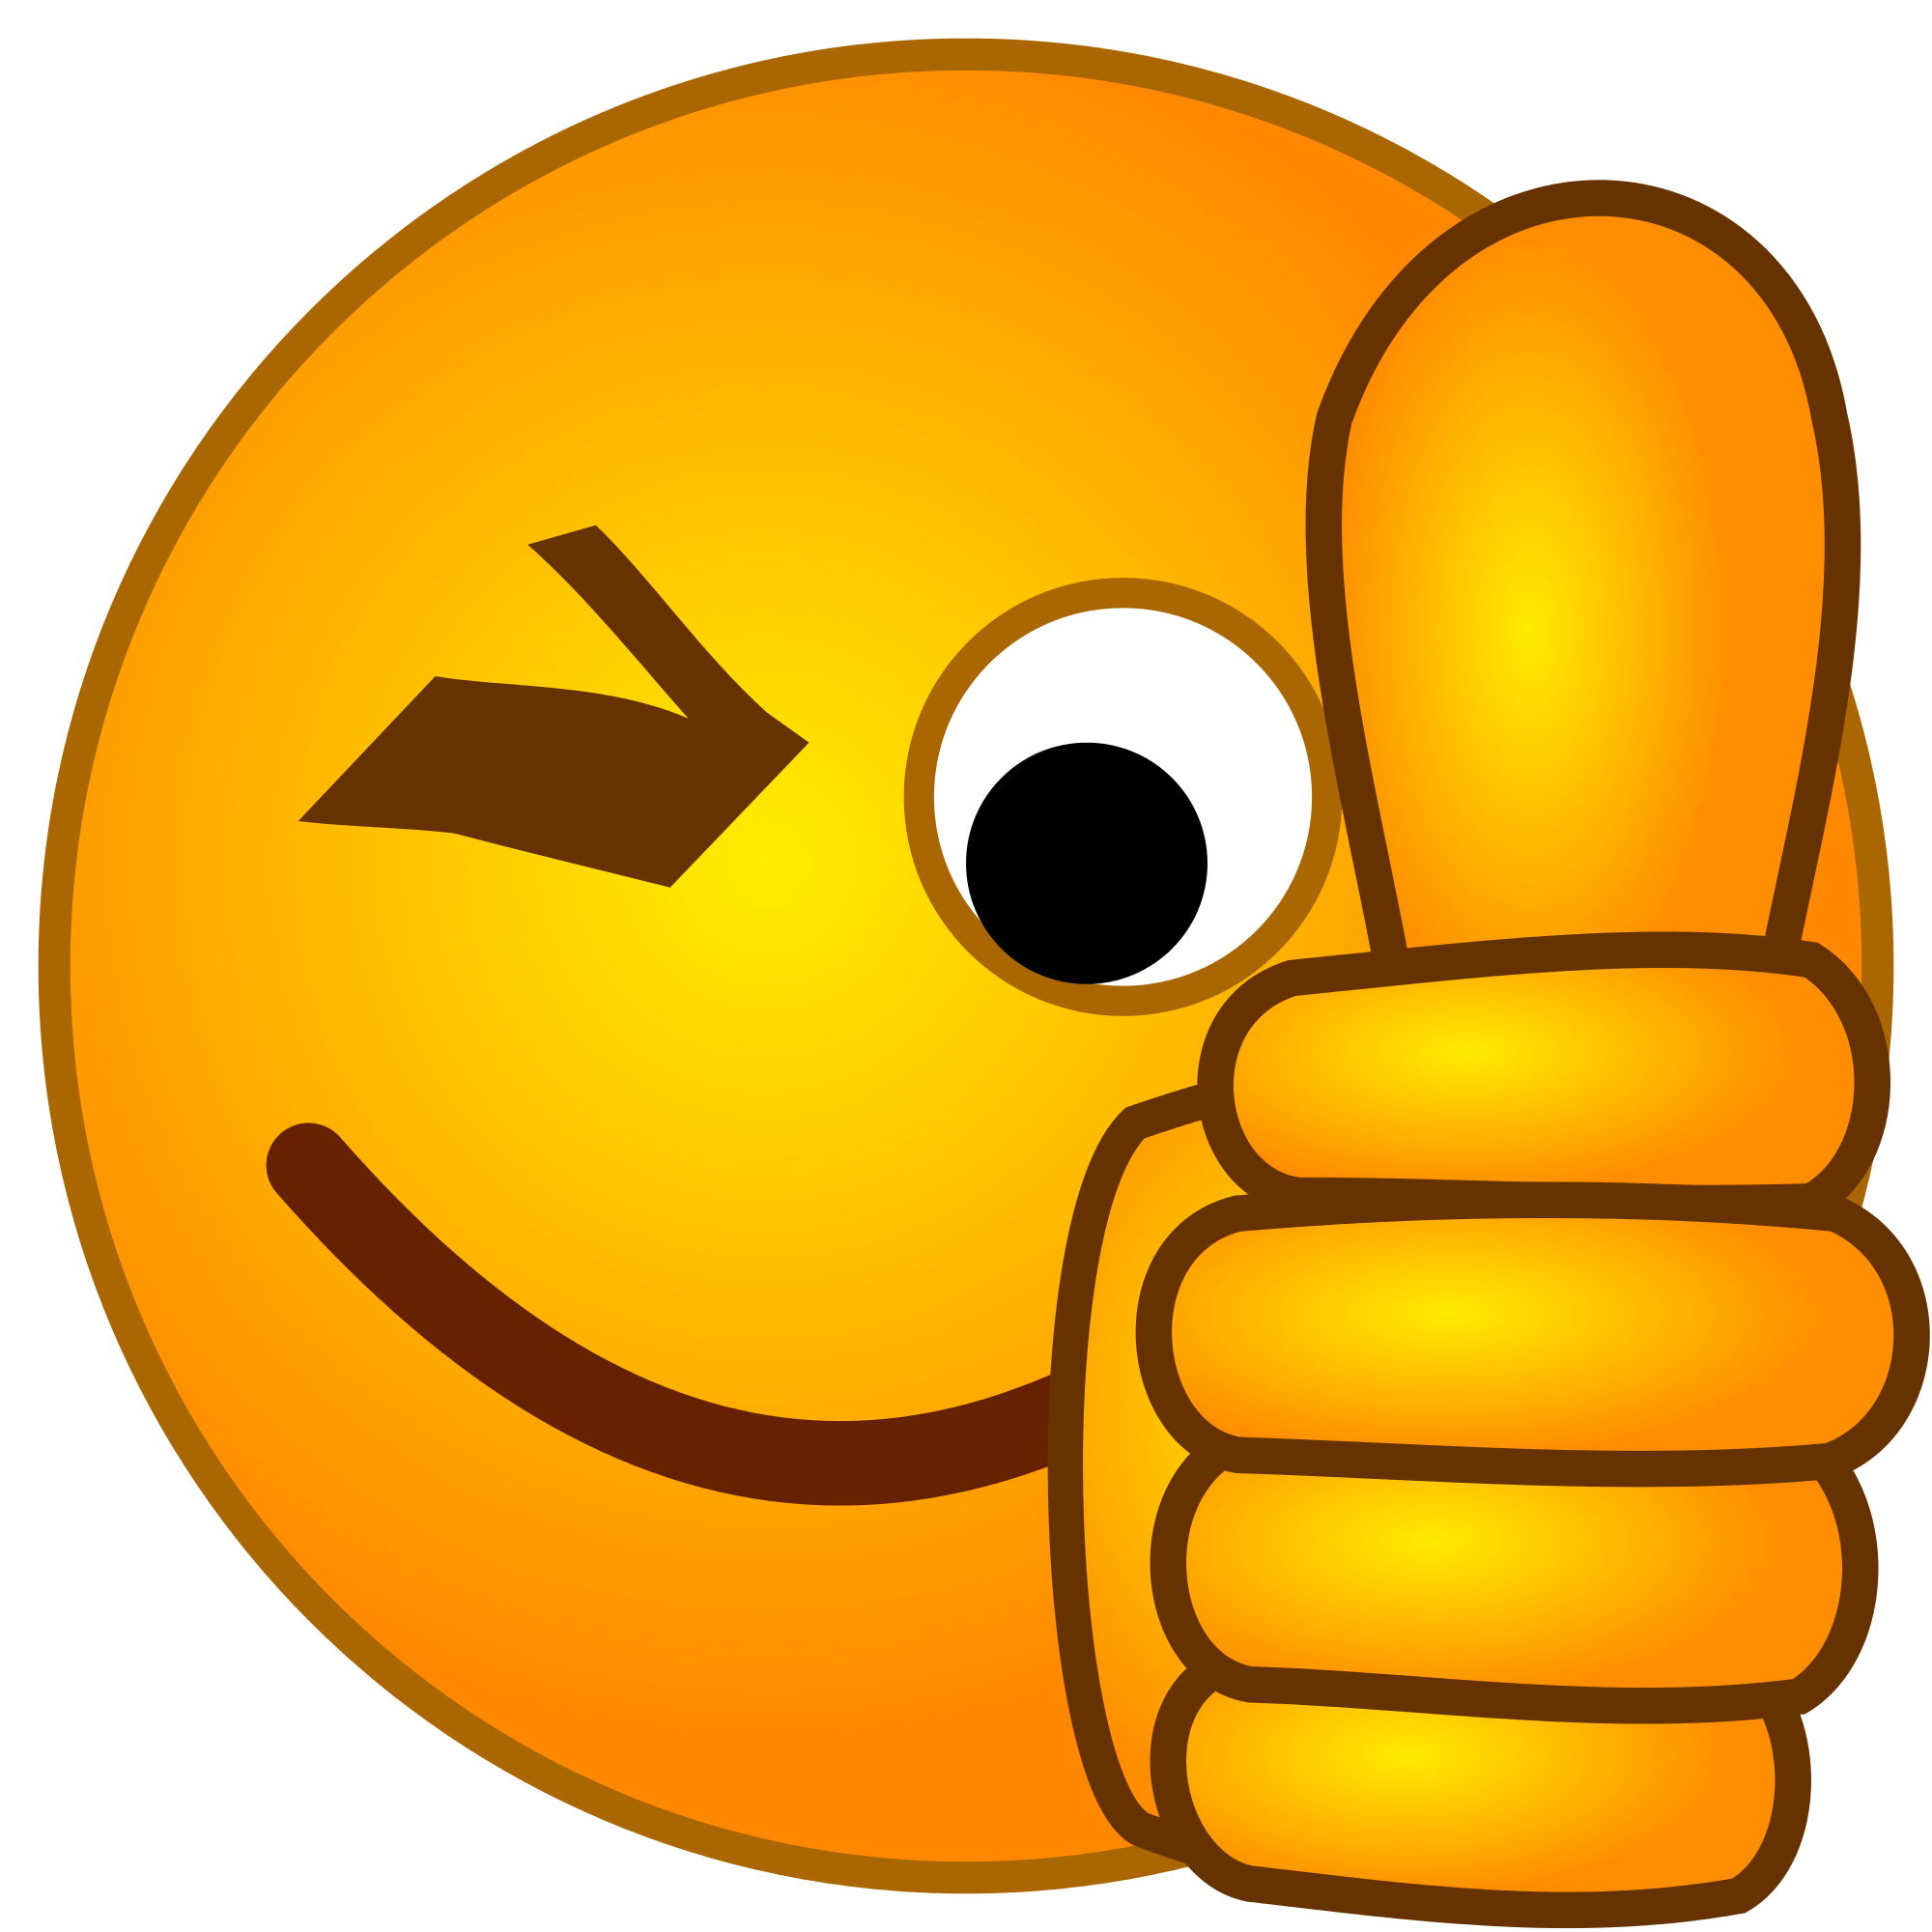 File:SMirC-thumbsup.svg - Wikimedia Commons